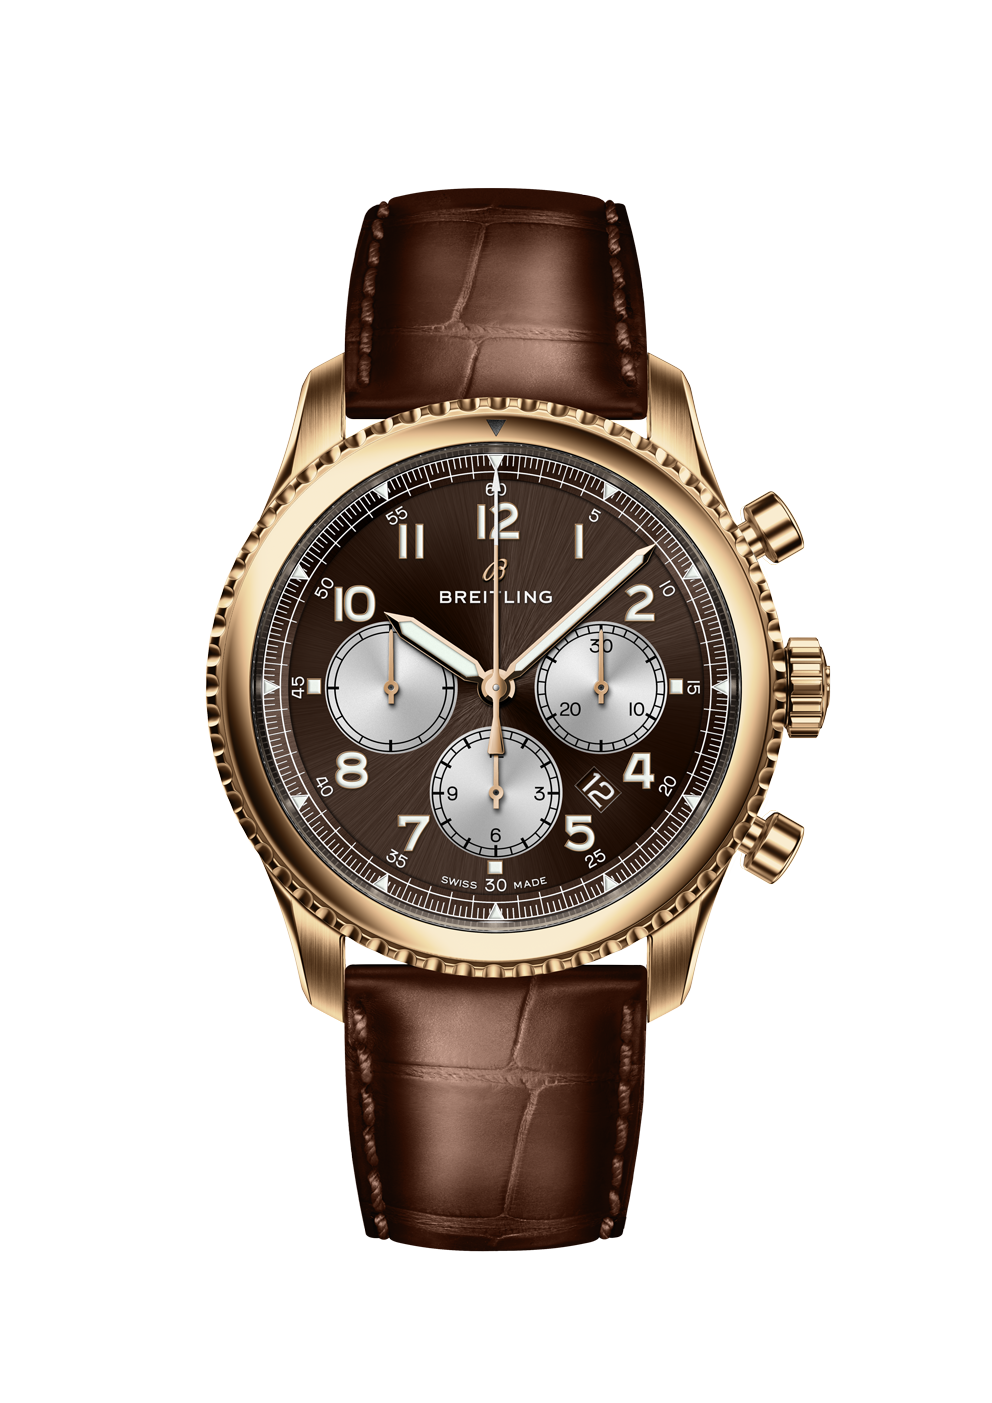 Breitling Navitimer 8 B01 in Rotgold bei Juwelier Hungeling